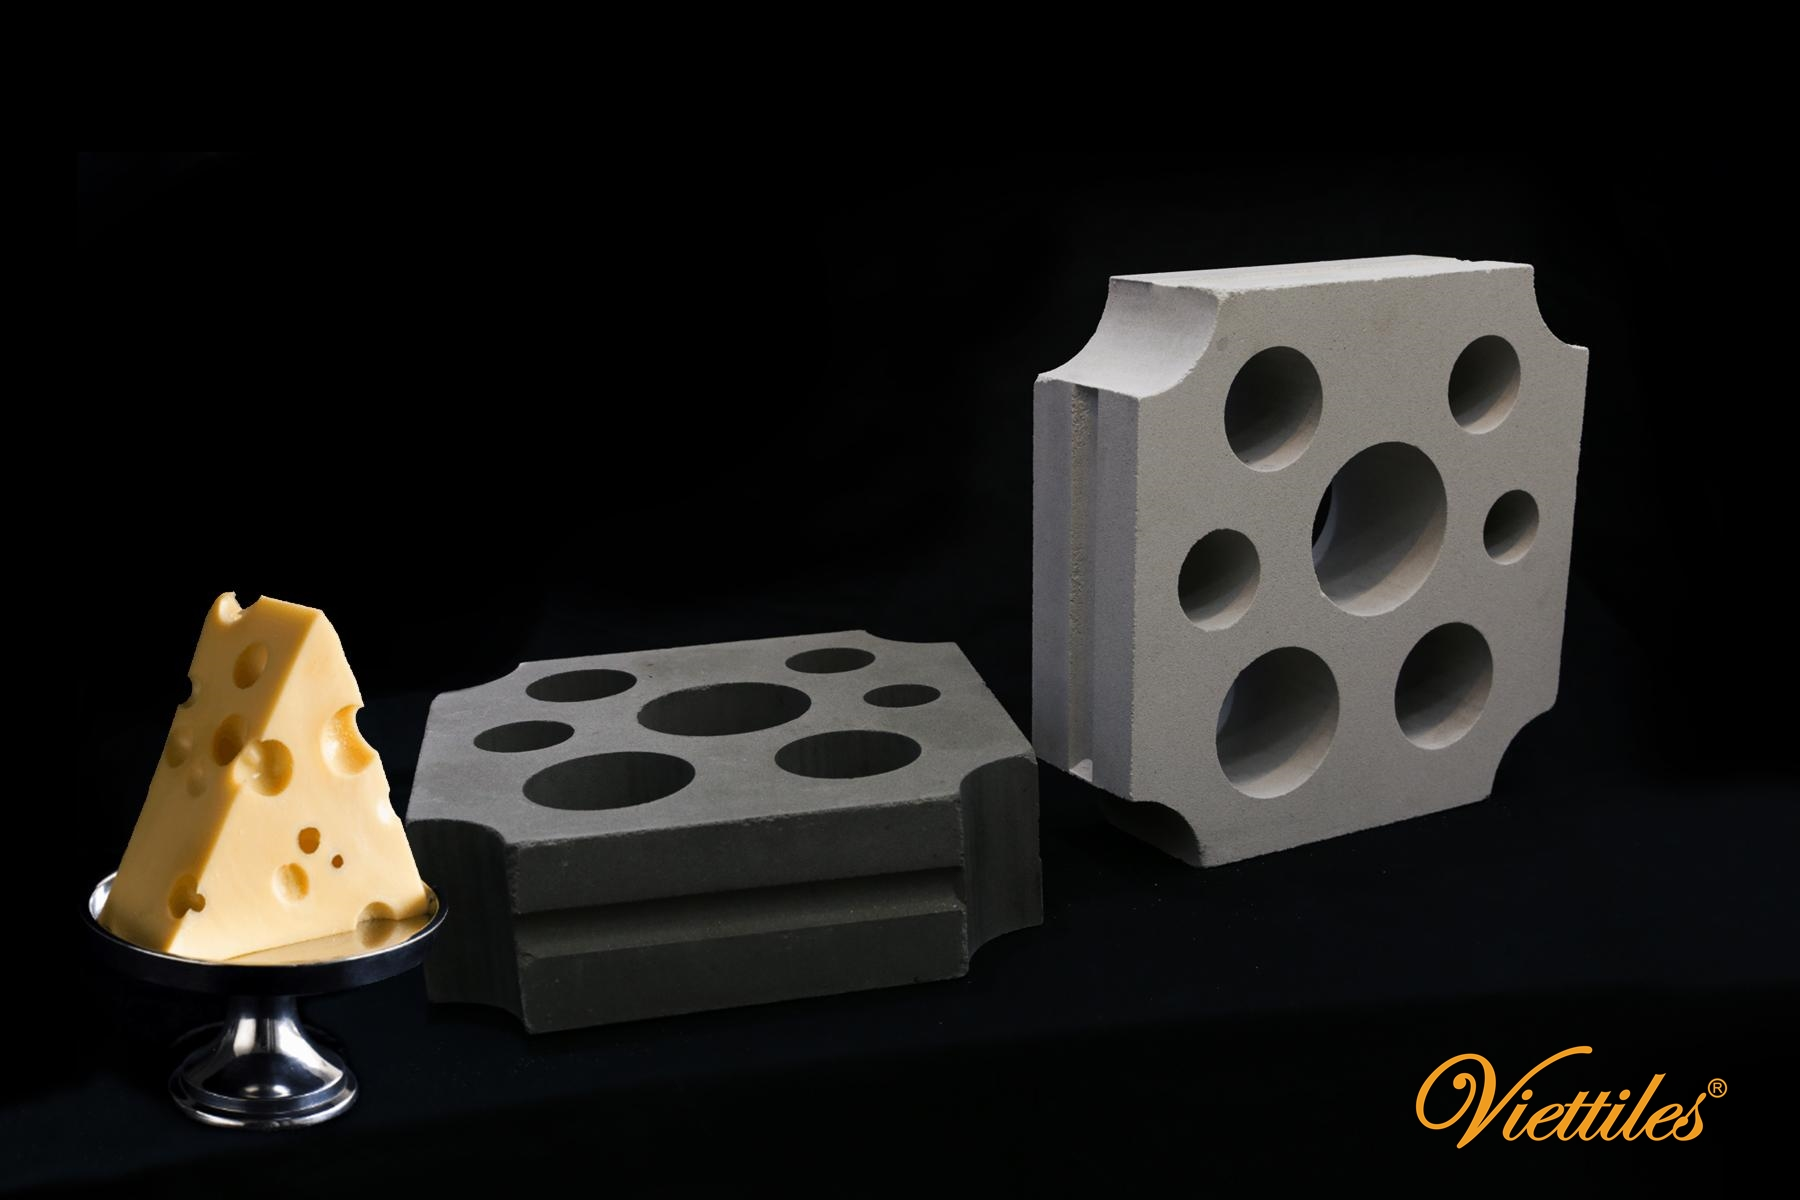 Cheese - The Latest Pattern Of Breeze Block From Viettiles